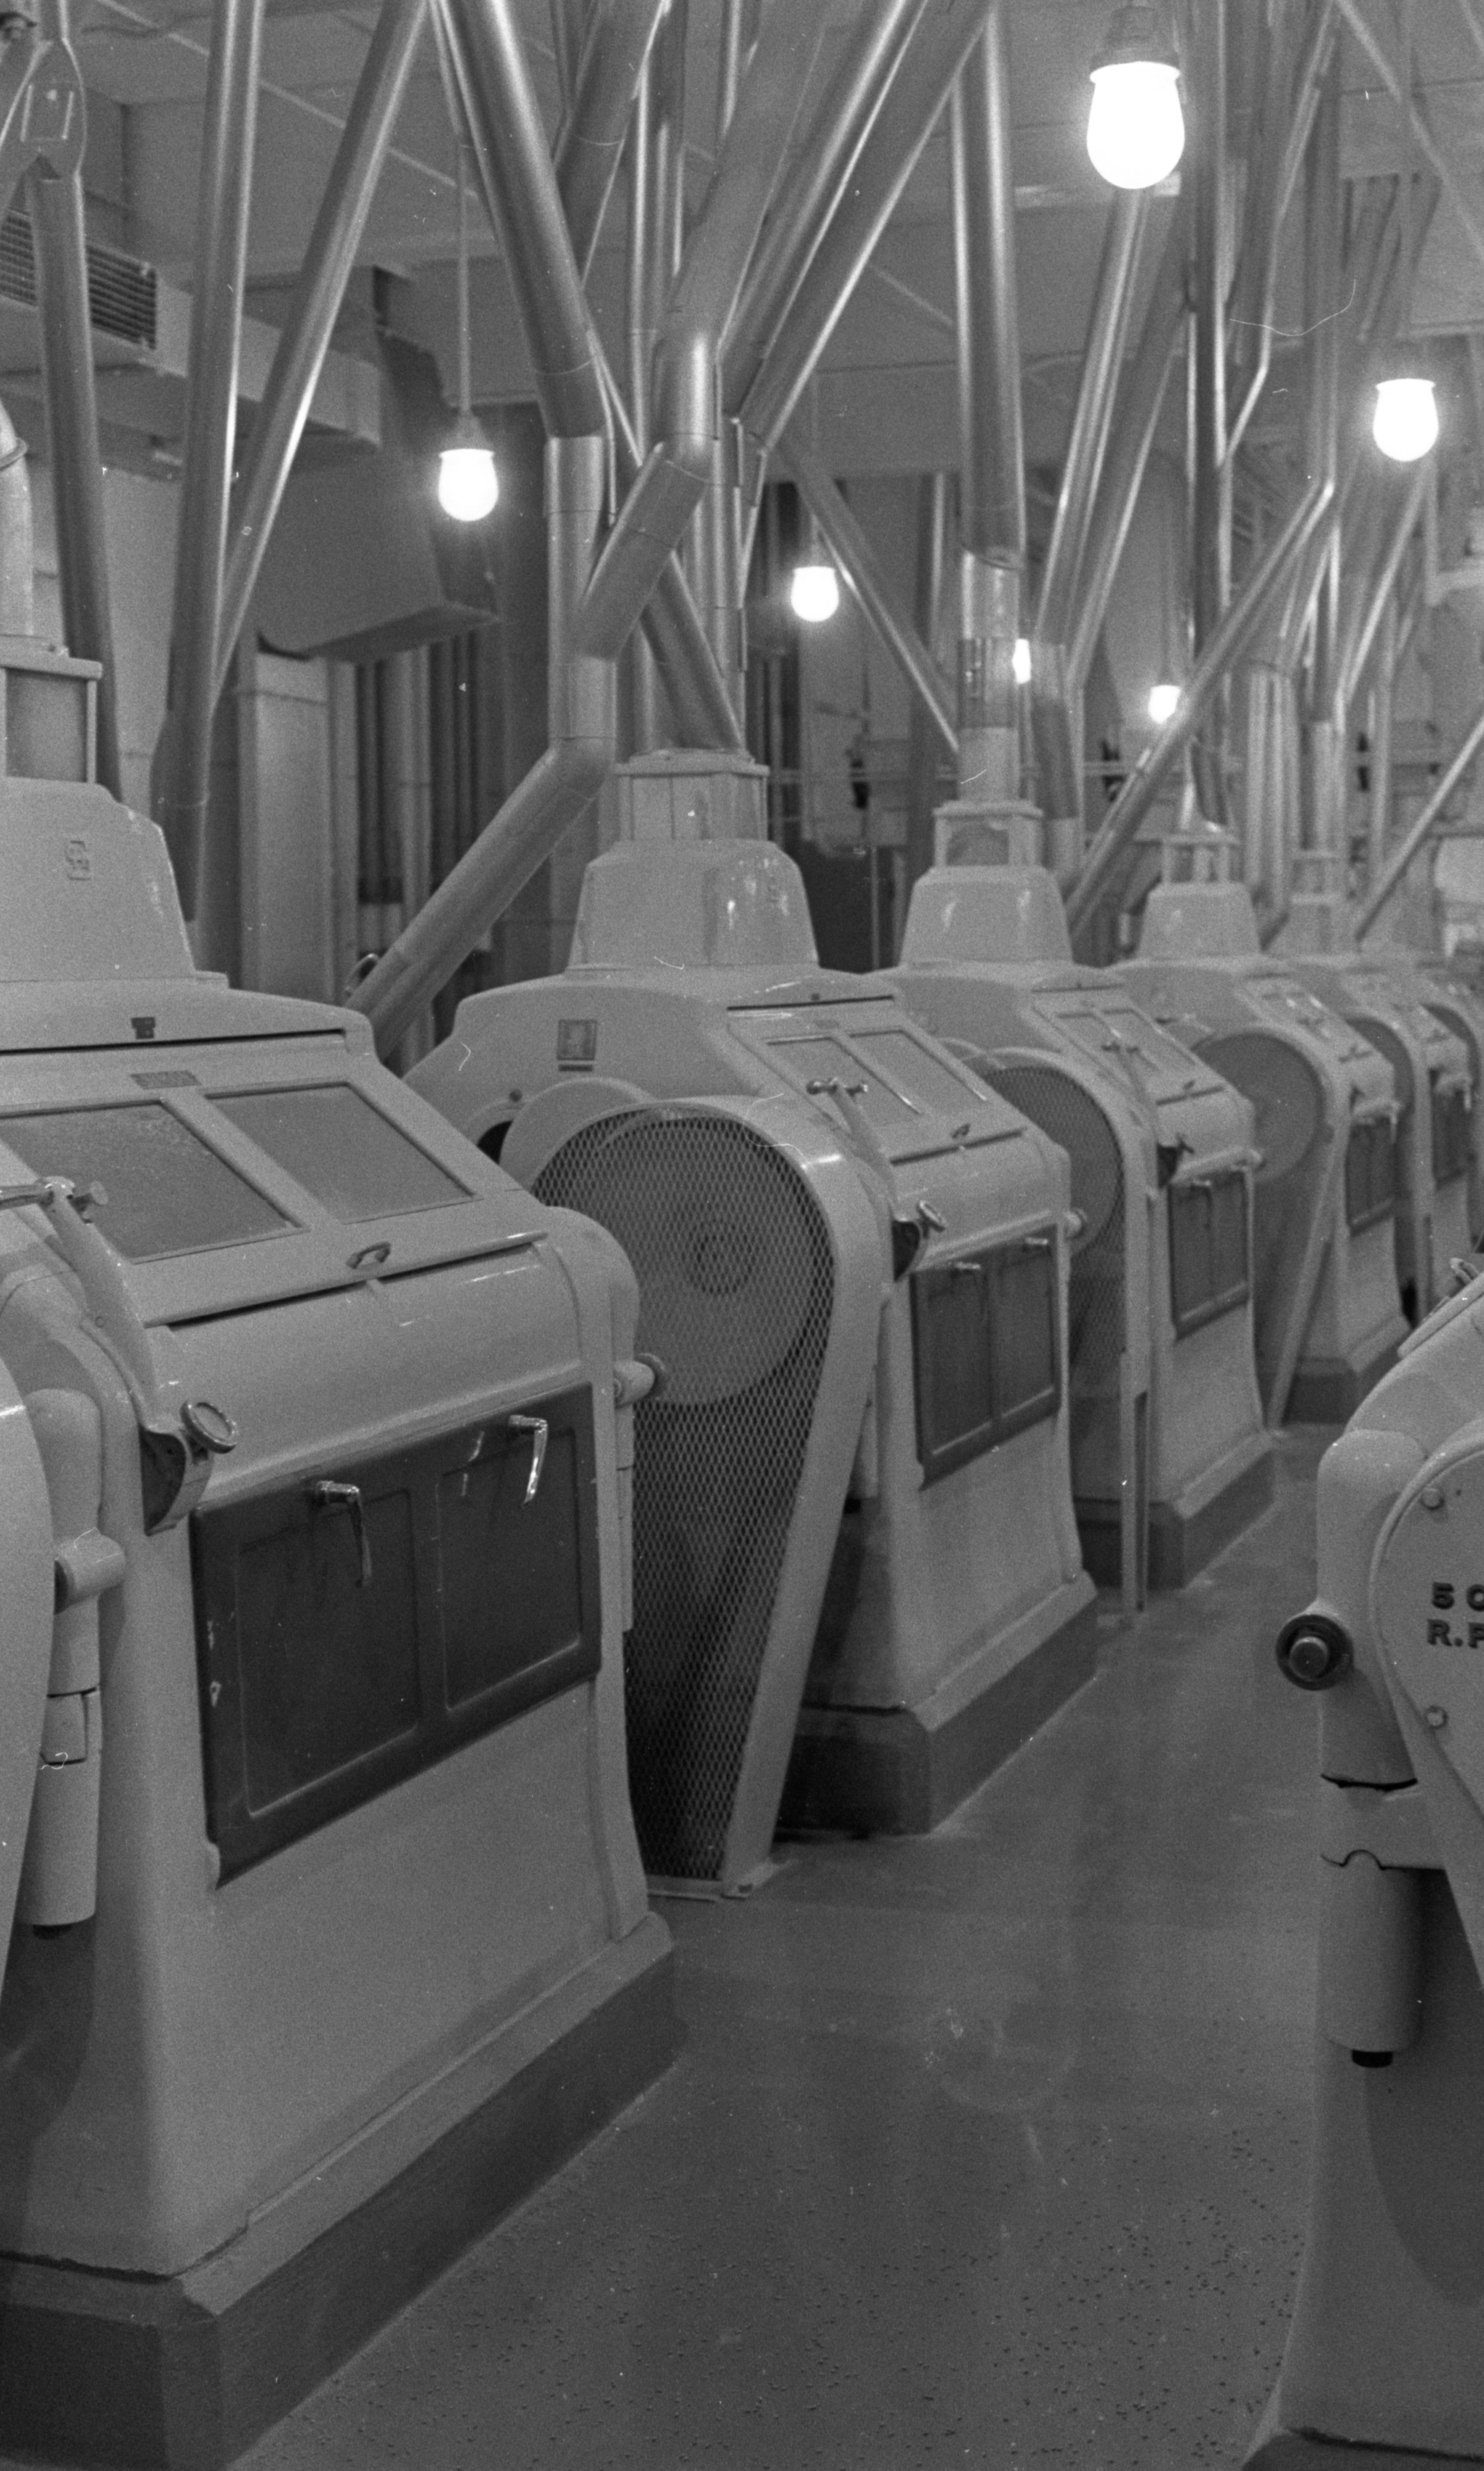 Grain Grinders Inside The Chelsea Milling Company, February 1972 image